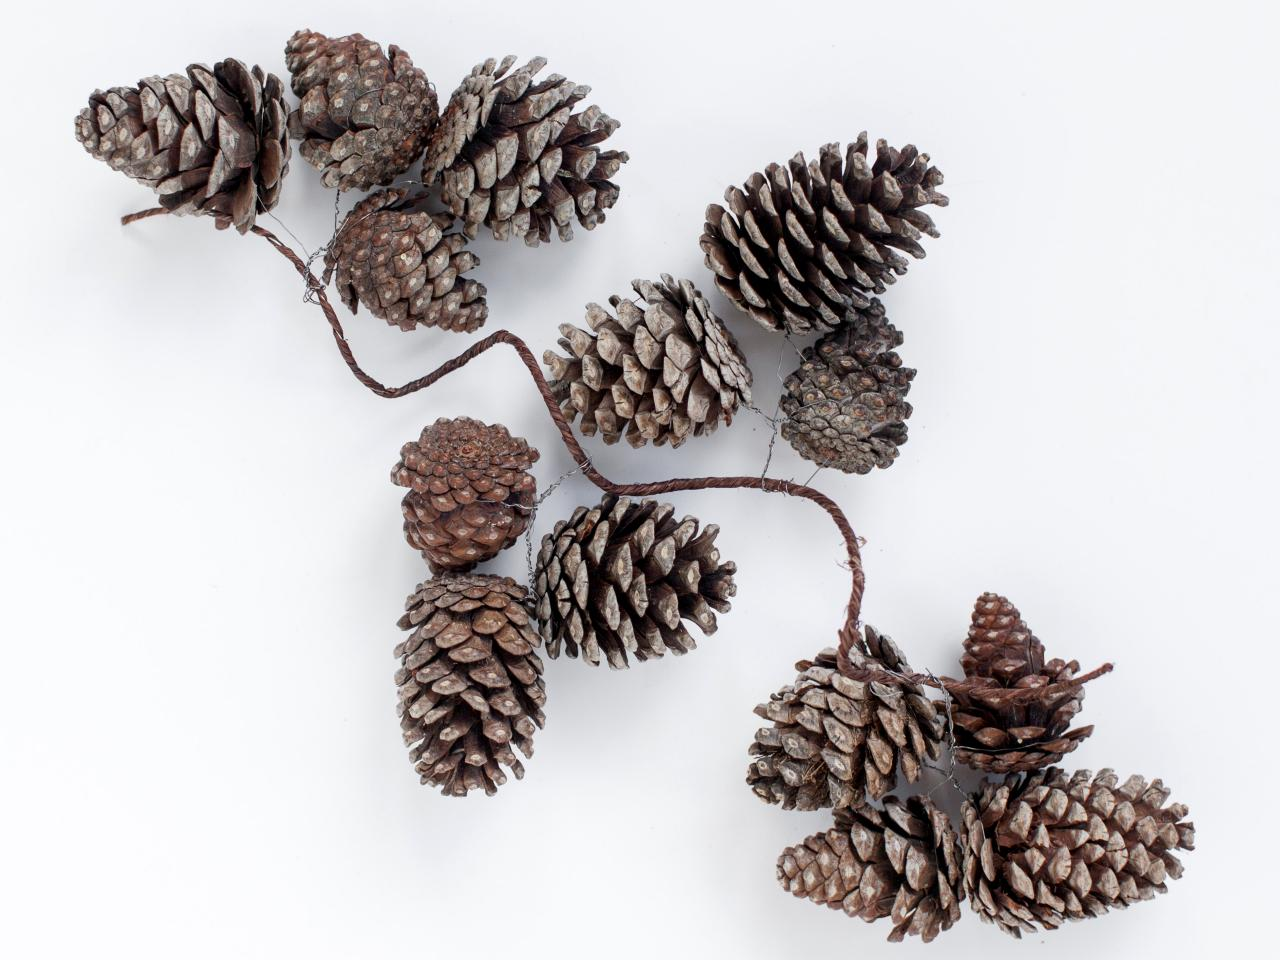 Pinecone clipart pinecone garland. Image of christmas pine